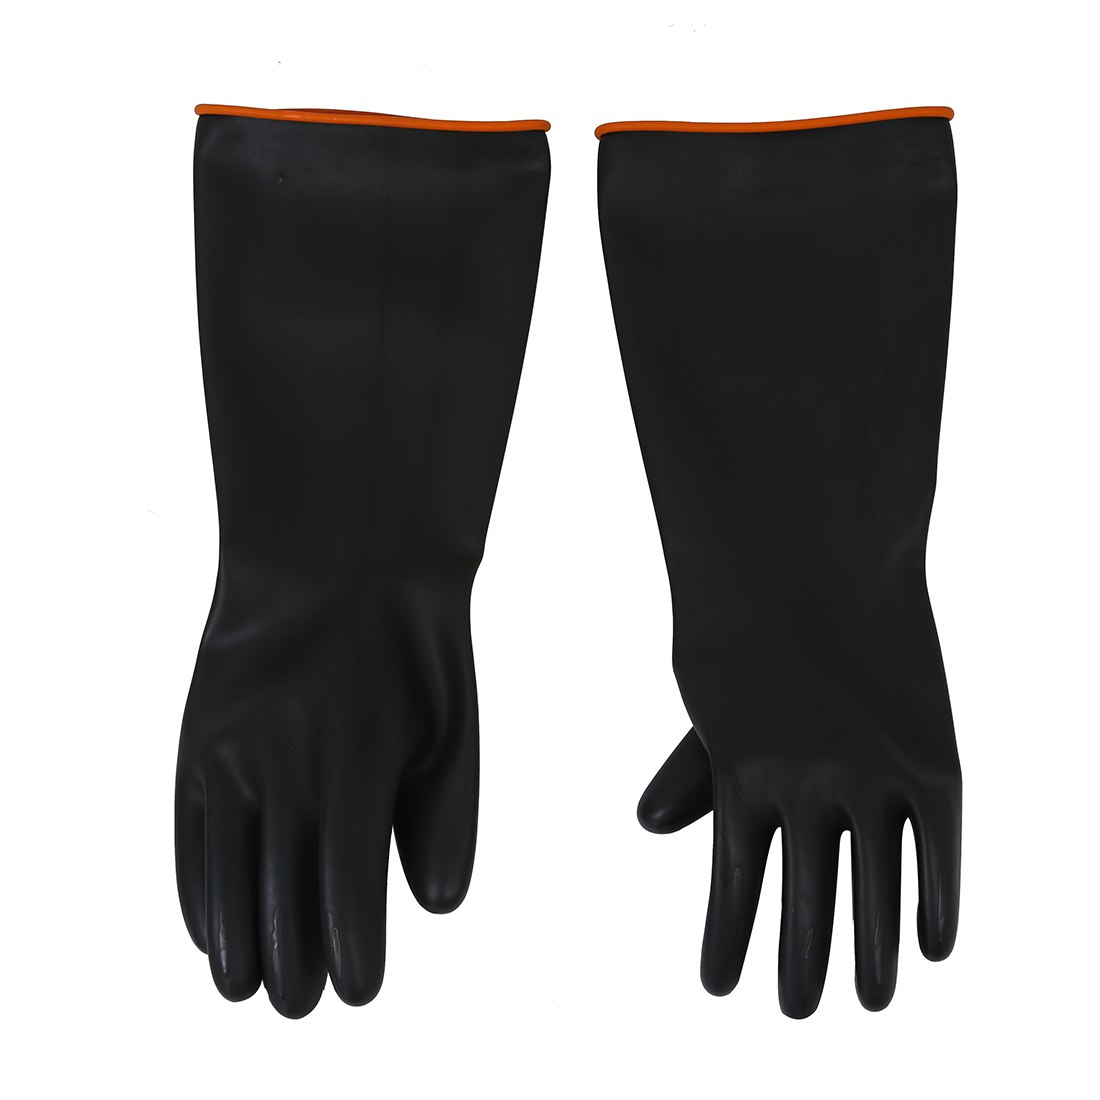 2 Pcs Of MOOL  Pair Chemical Resistance Industry Elbow Long Rubber Gloves 18